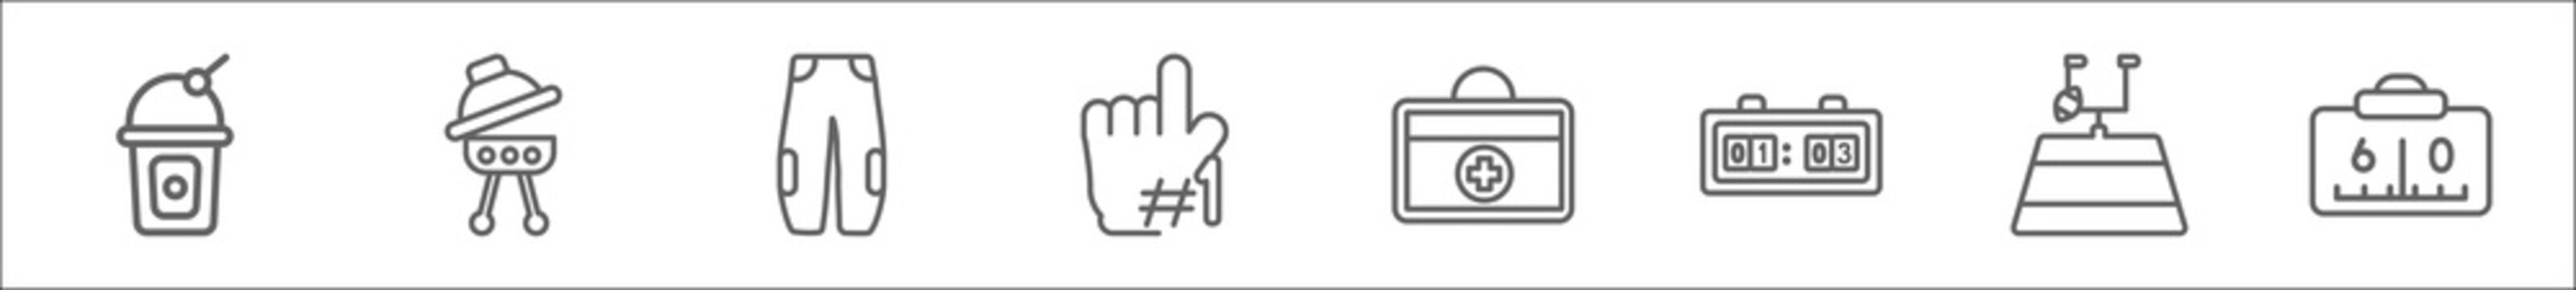 outline set of american football line icons. linear vector icons such as soda drink, barbecue with wheels, practice pants, foam finger, first aid kit, score, football field, american football scores